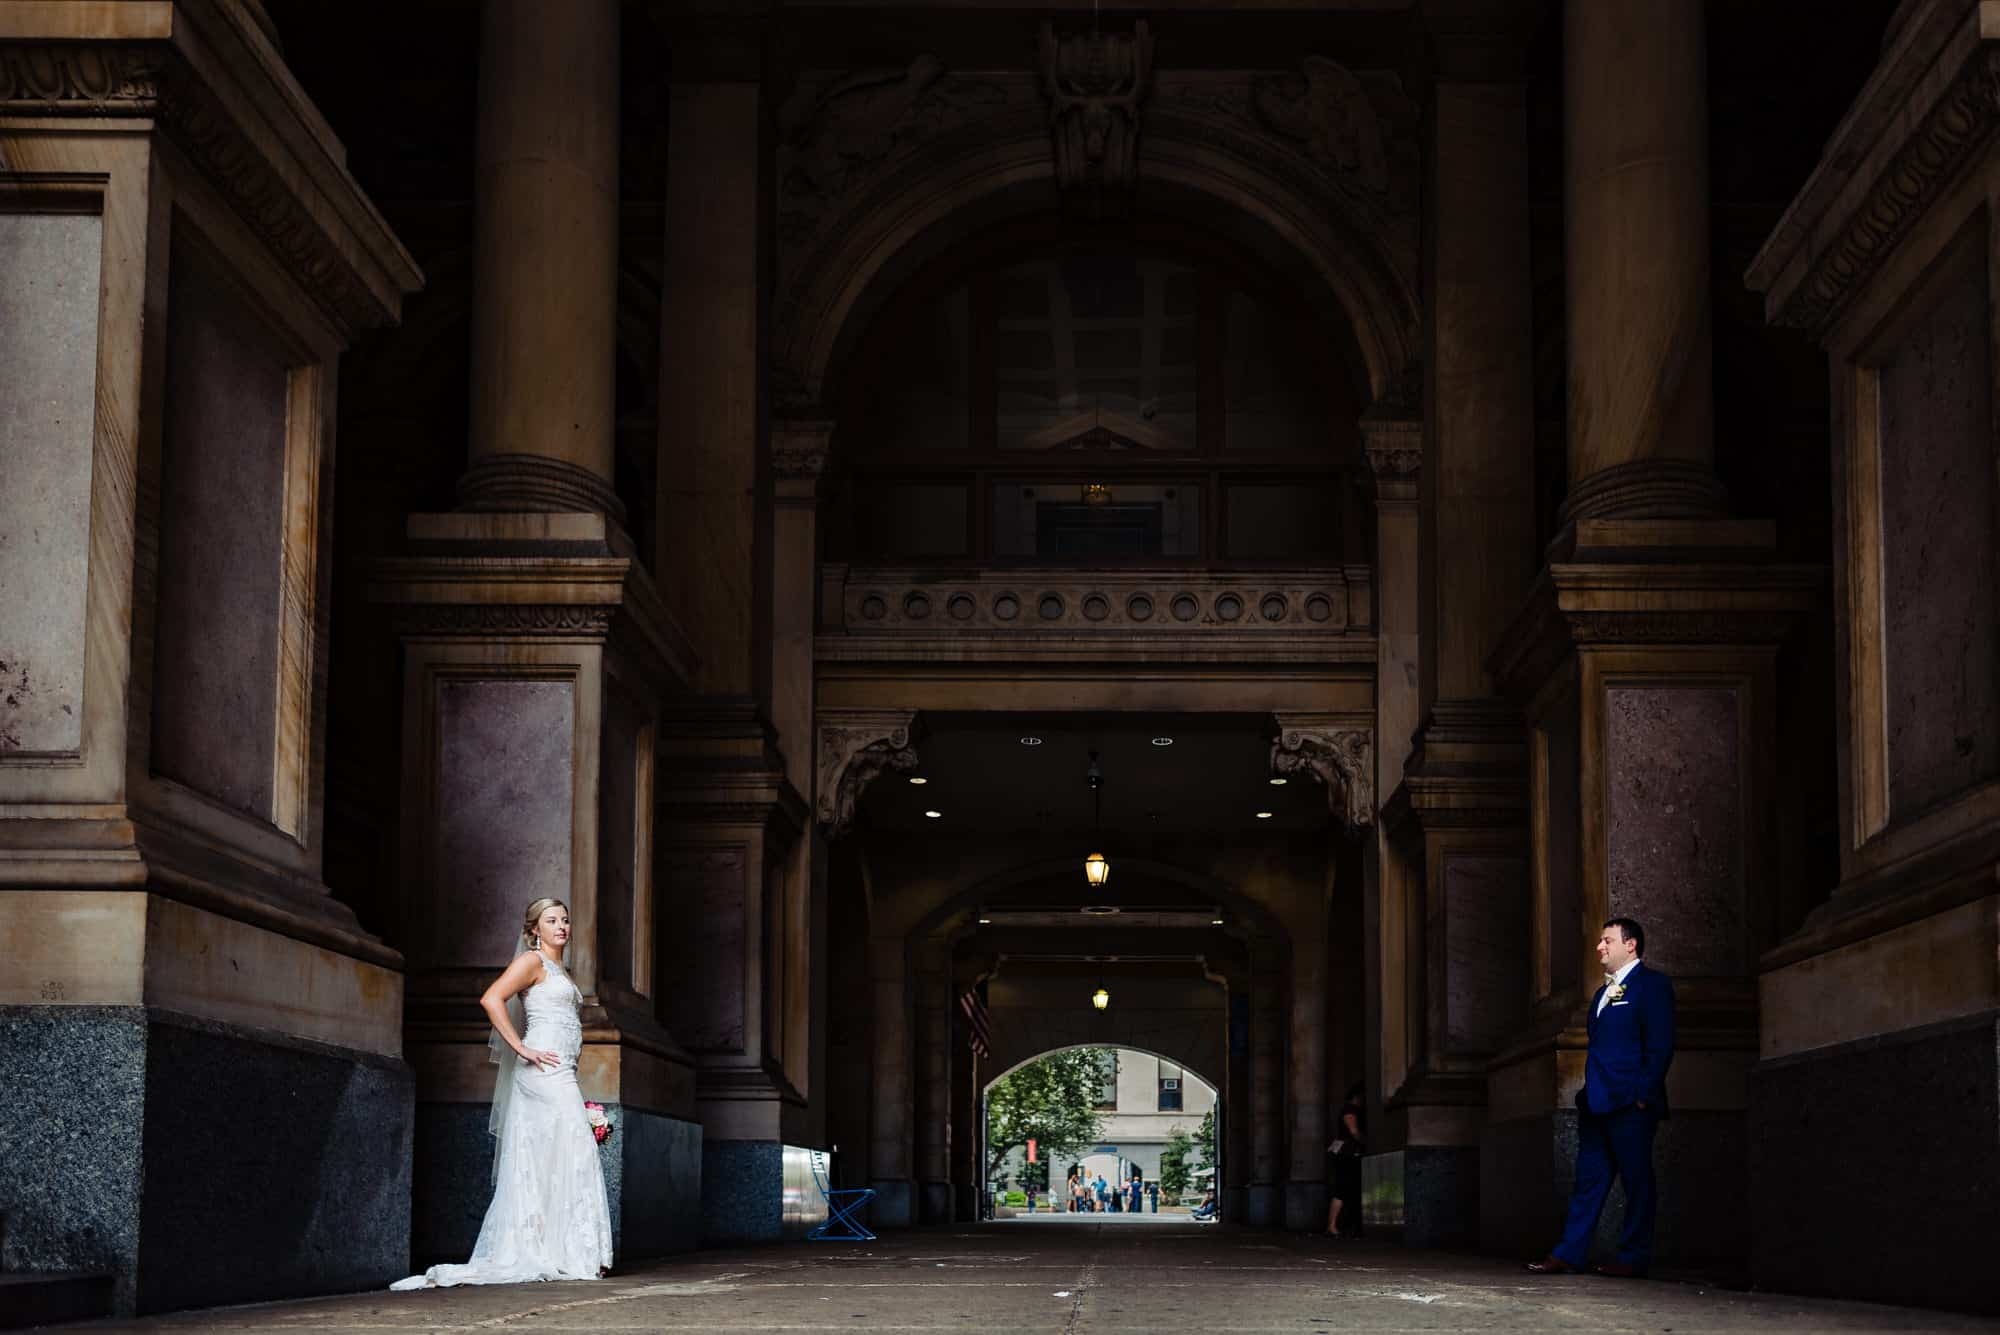 wedding day, bride and groom in old historic building face each other on opposite sides of the walls